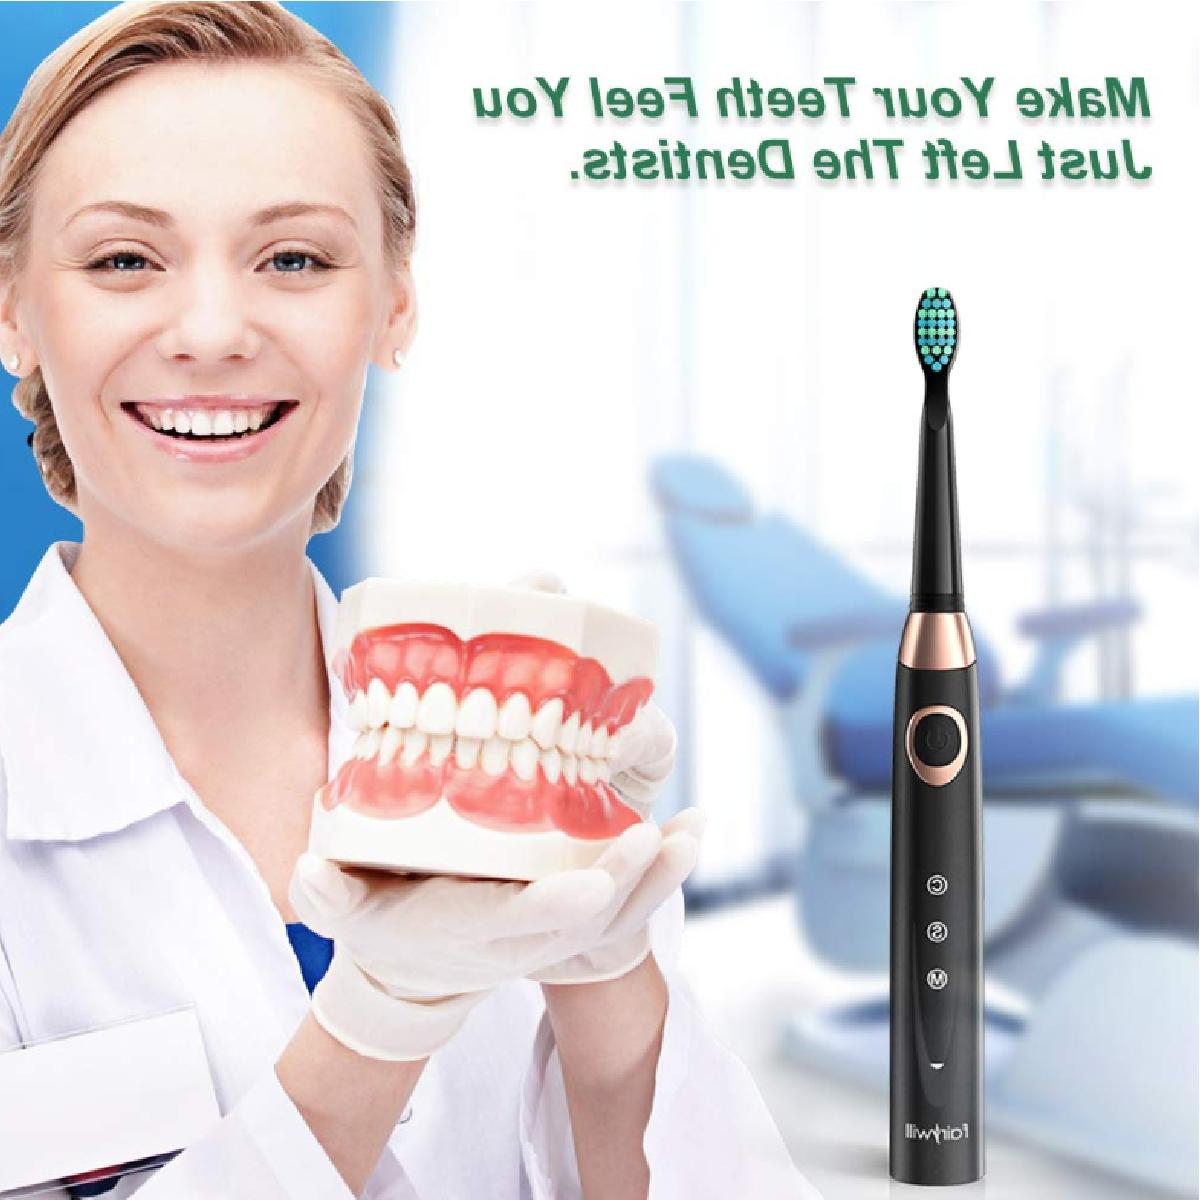 Fairywill Sonic Electric Toothbrush Black Timer Rechargeable Summer Travel